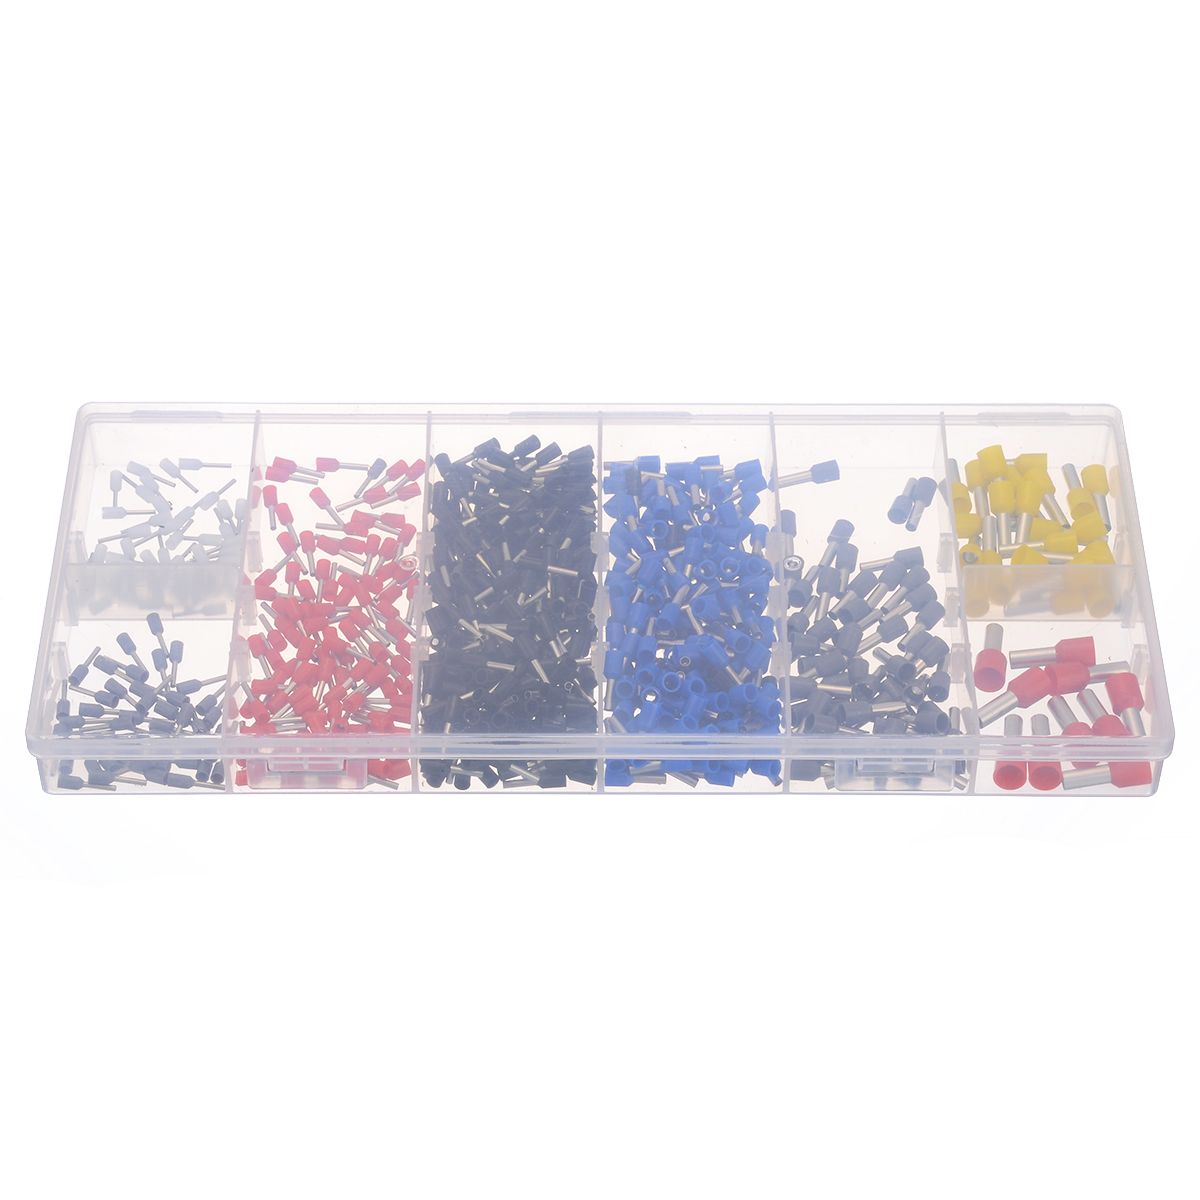 685pcs/kit Wire End Ferrule Assortment Insulated 0.5-10mm² End Sleeve Cable Lugs Electrical Crimp Terminator